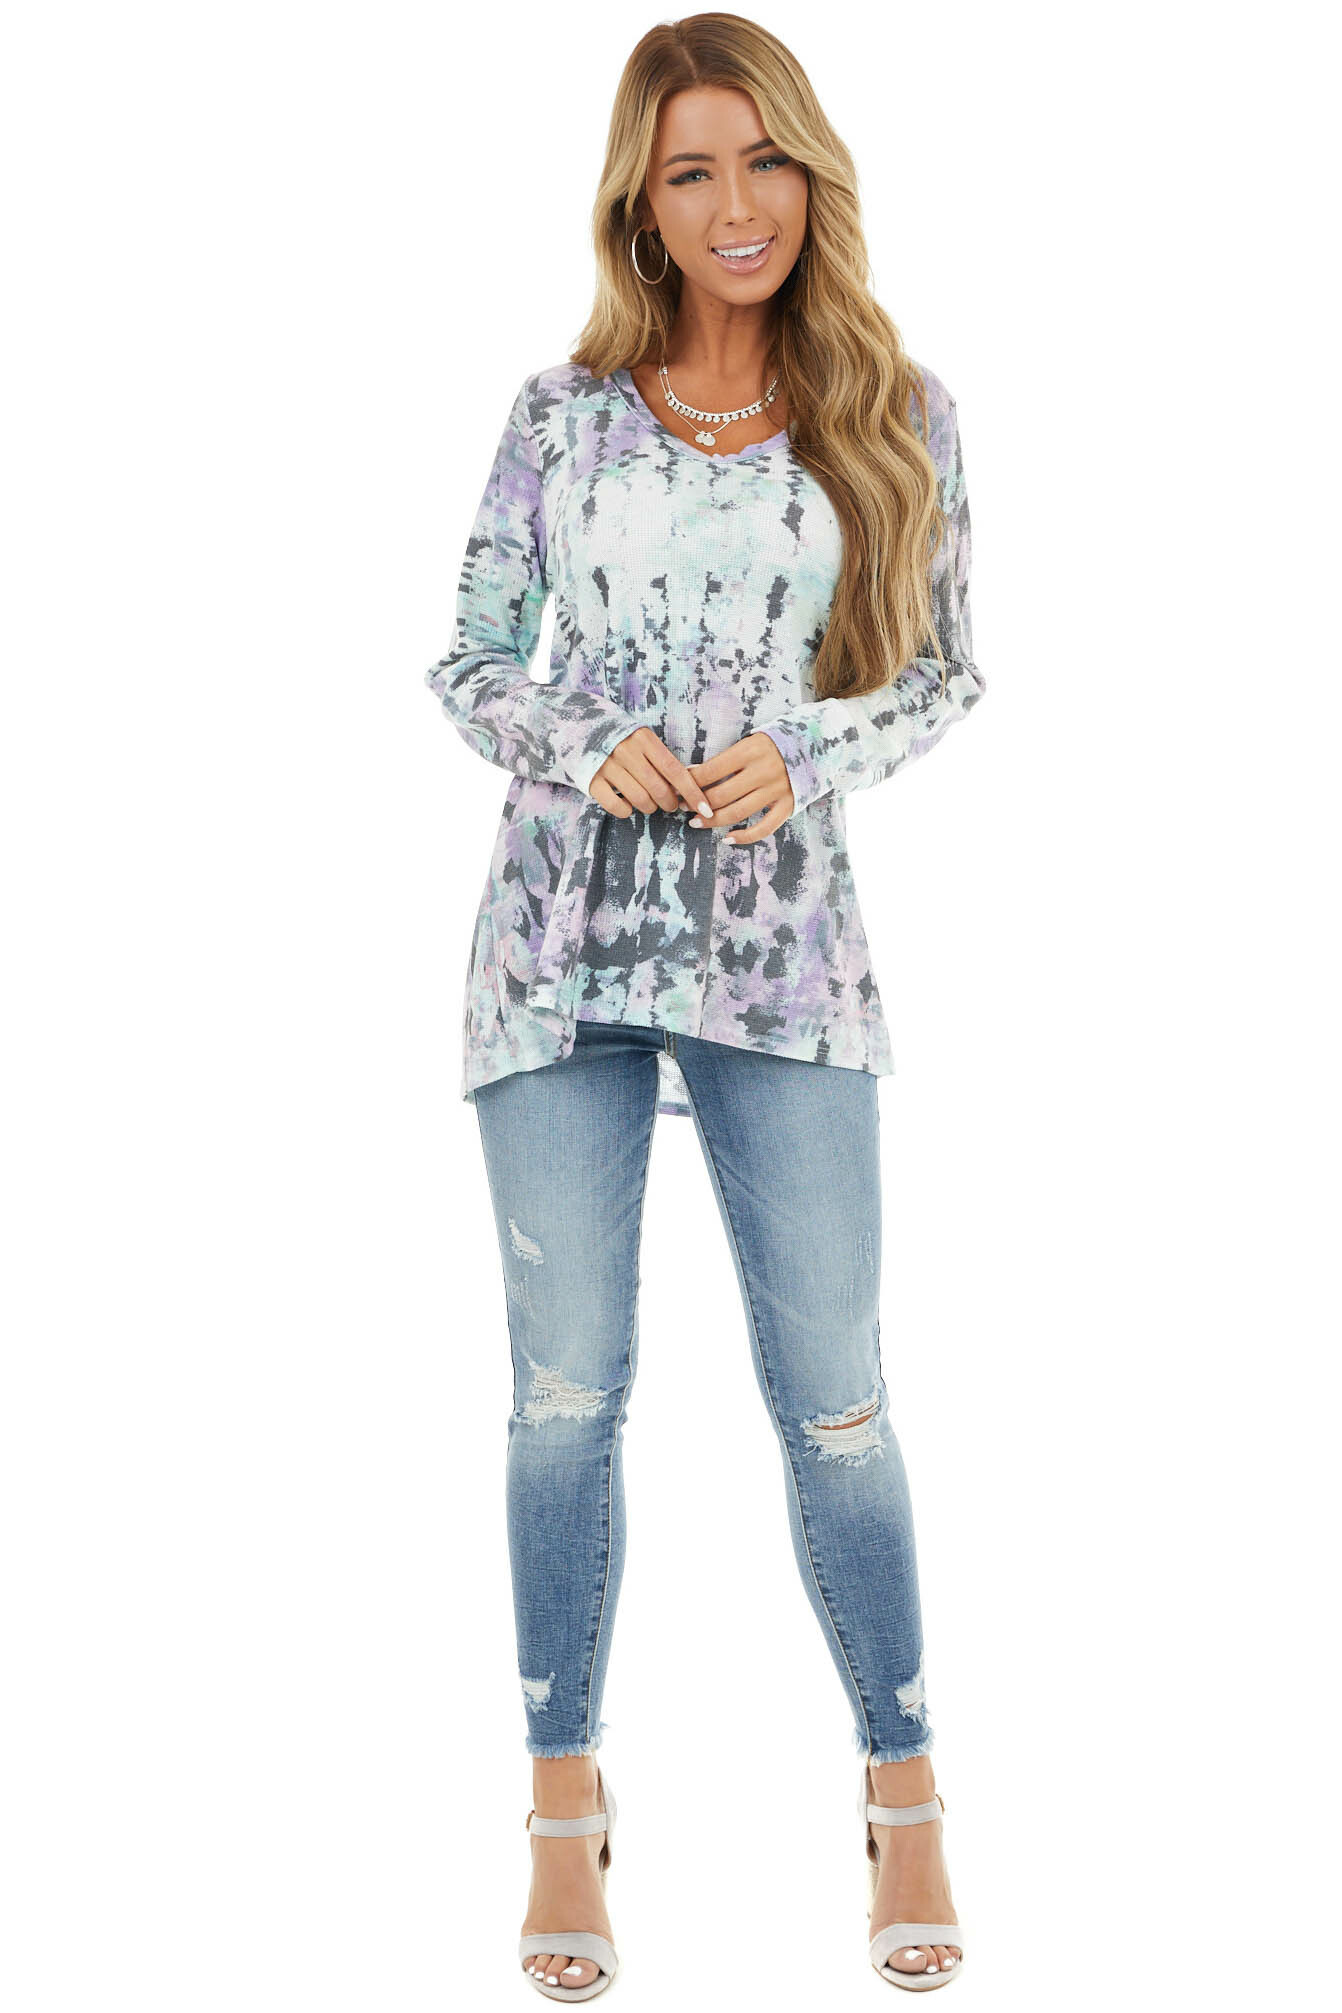 Lilac and Mint Tie Dye Textured Knit Top with Long Sleeves